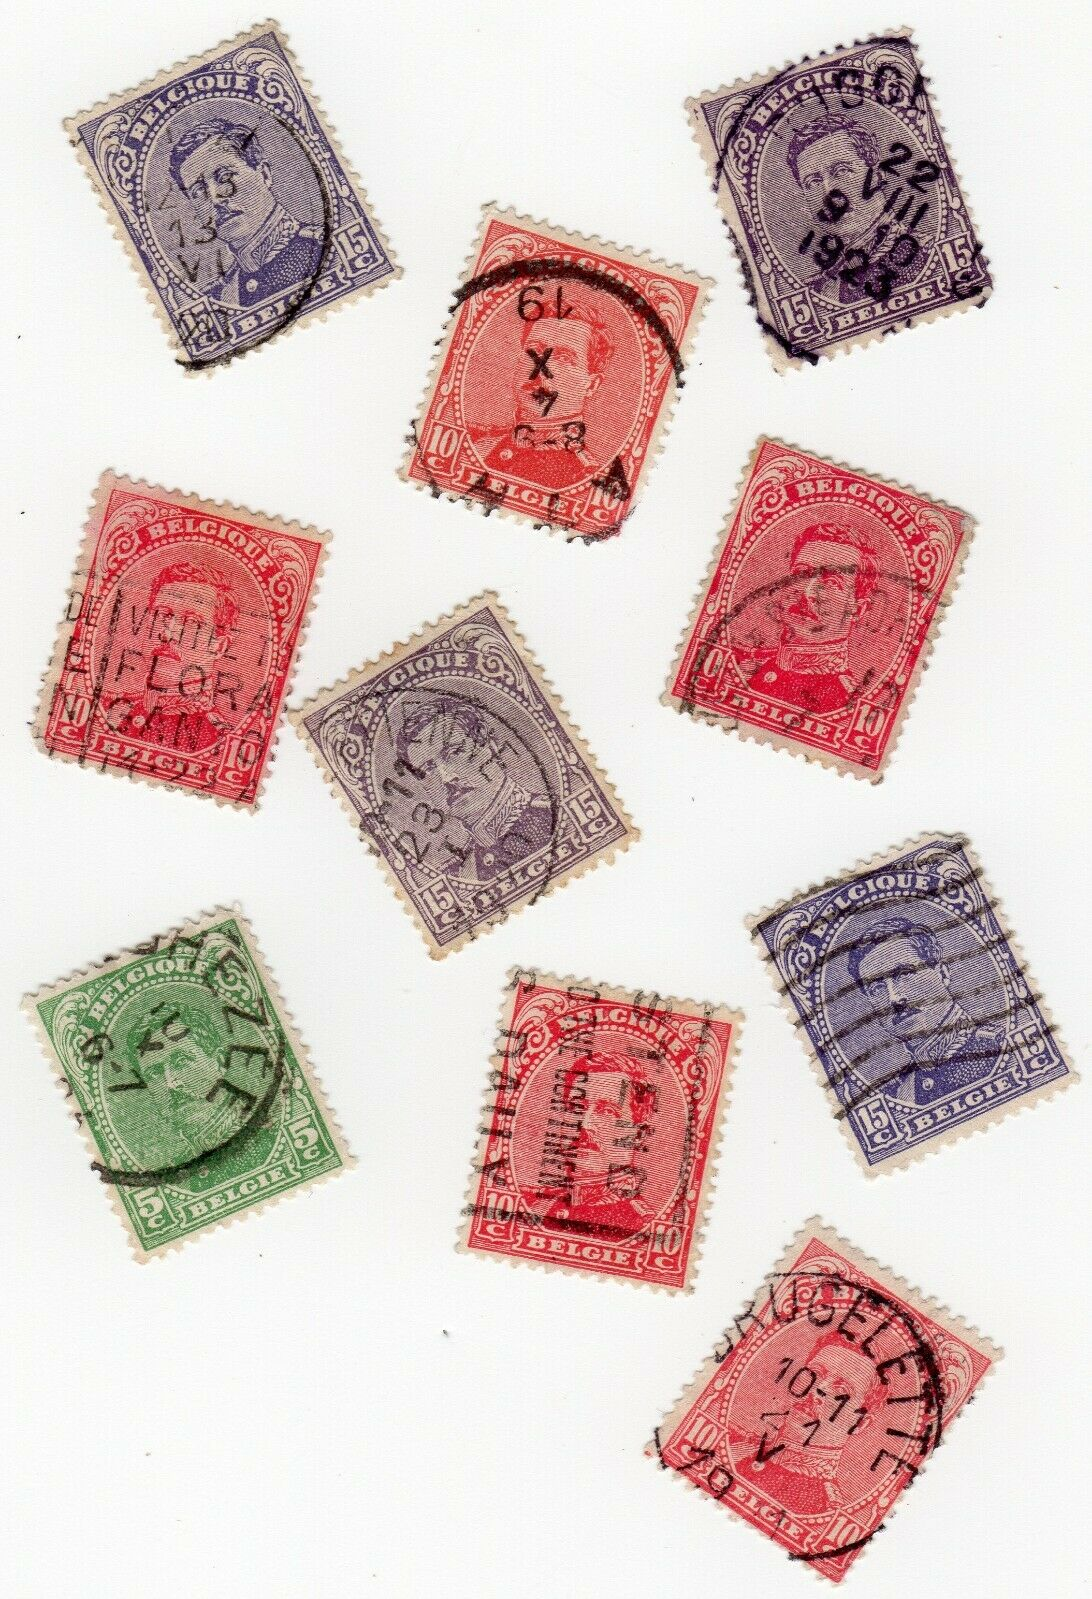 10 Used Postage Stamps From Belgium 1915 King Albert 5c 10c 15c - $1.00